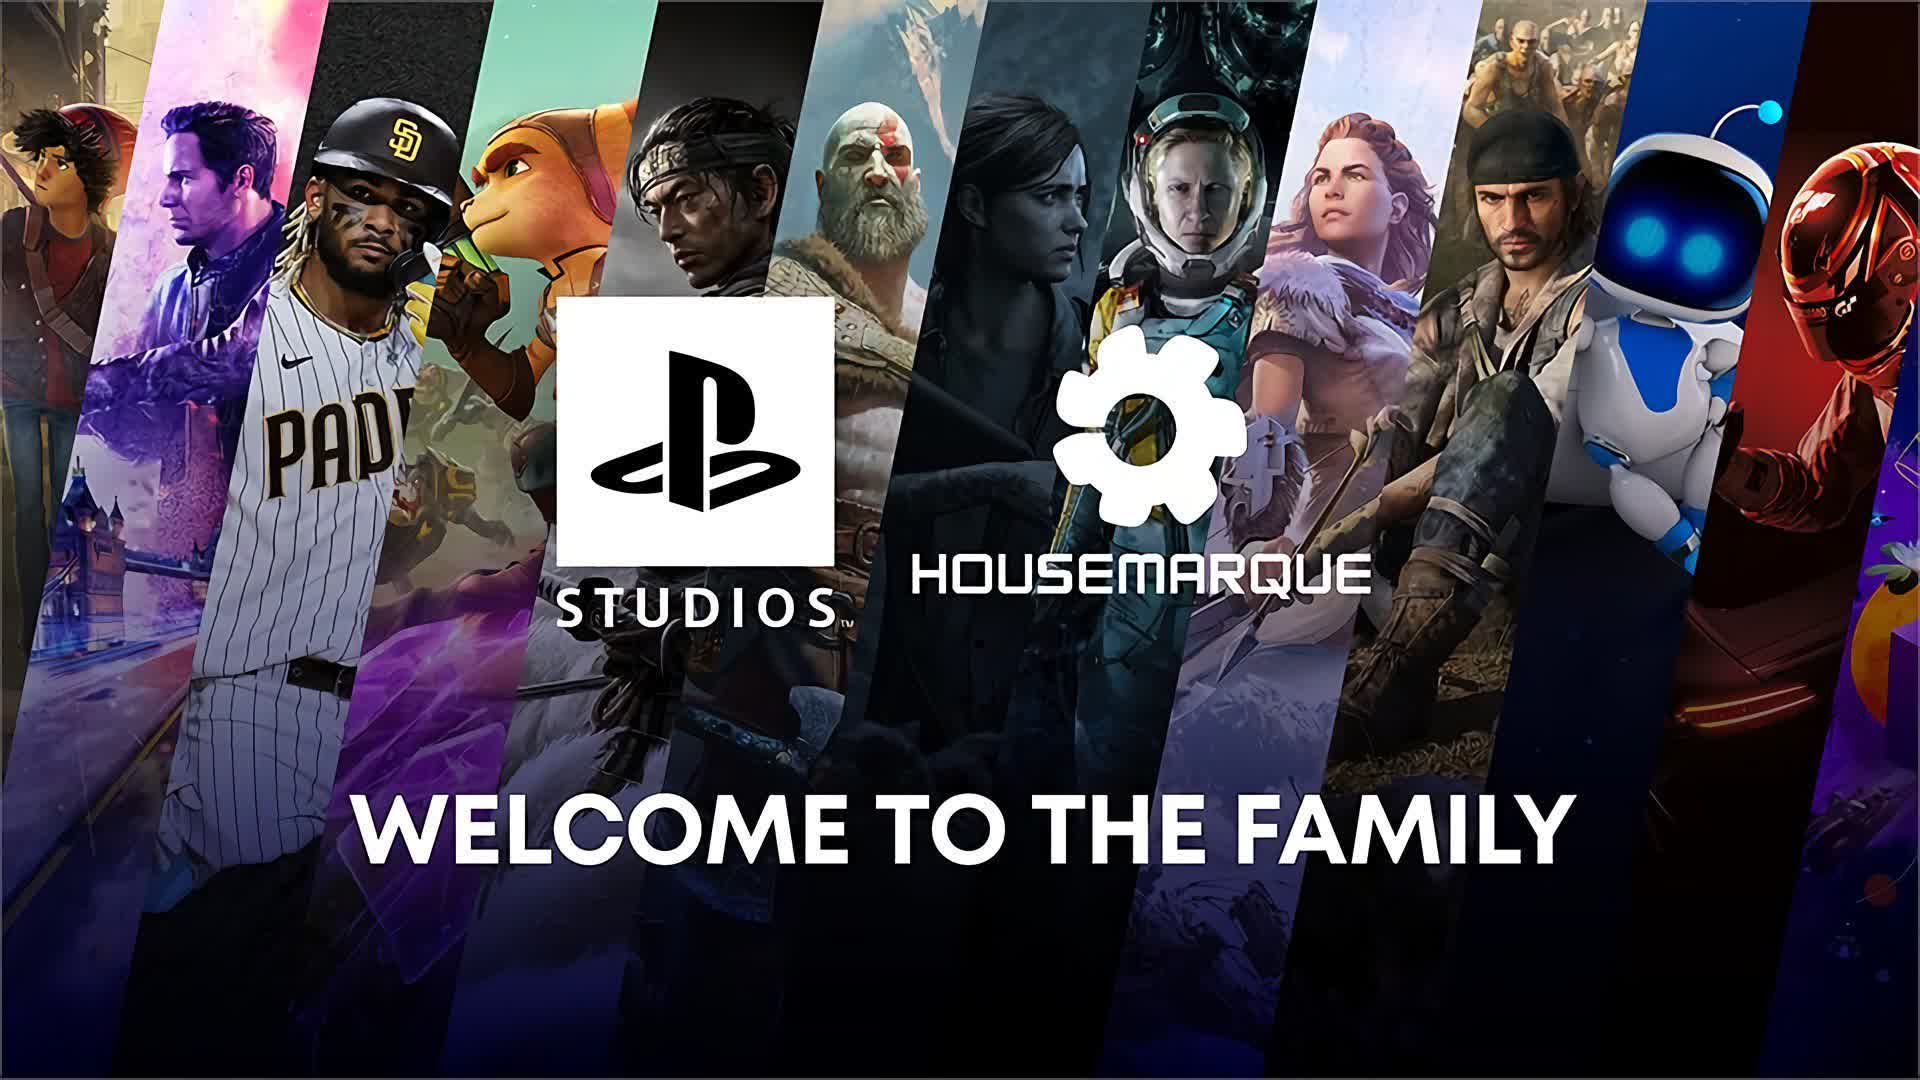 Sony buys studio Housemarque and possibly Bluepoint Games as well